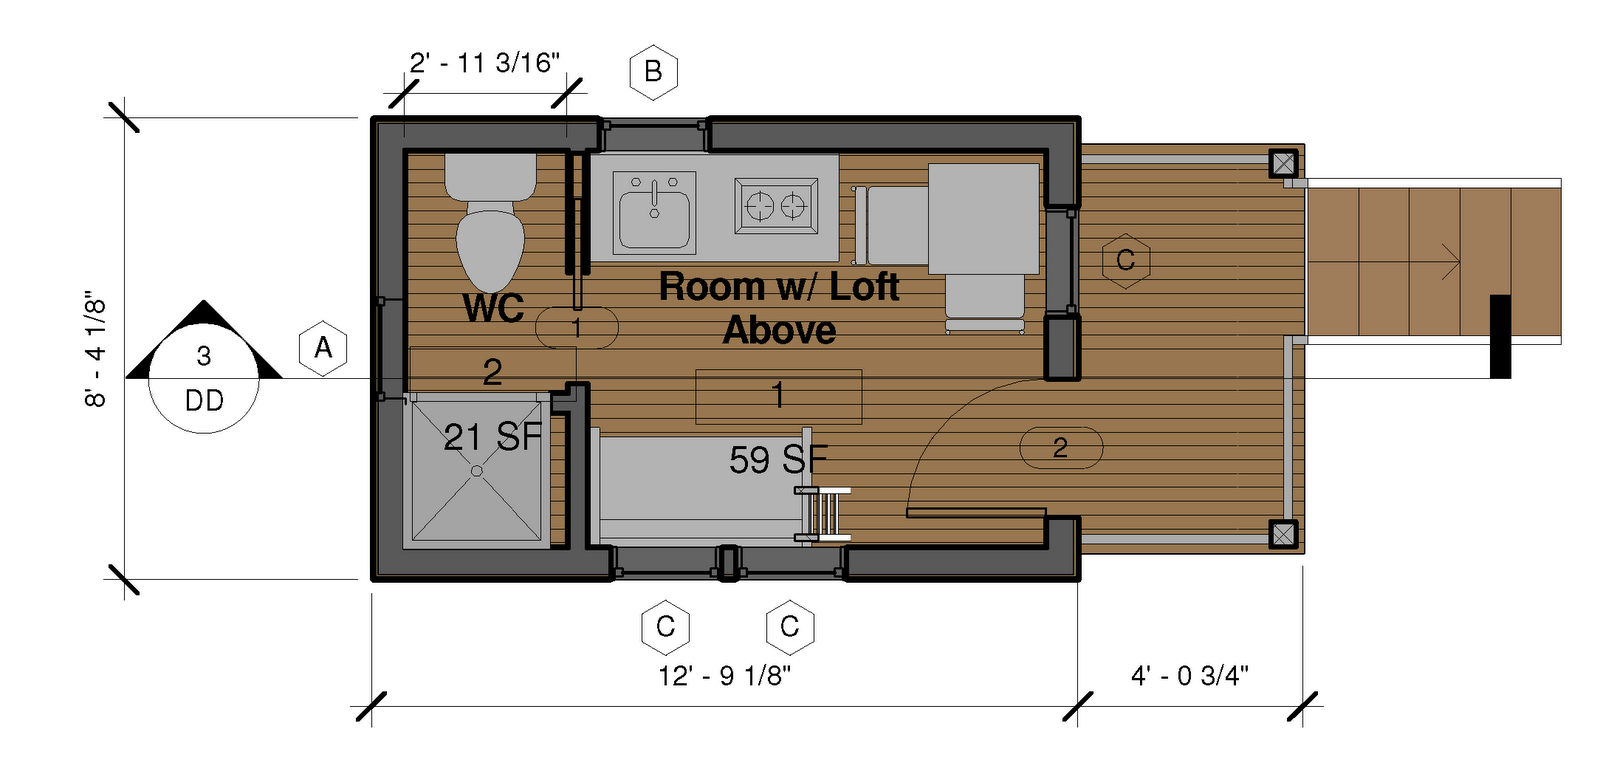 Tiny house plans house plans ideas 2016 2017 - Small house plans ...